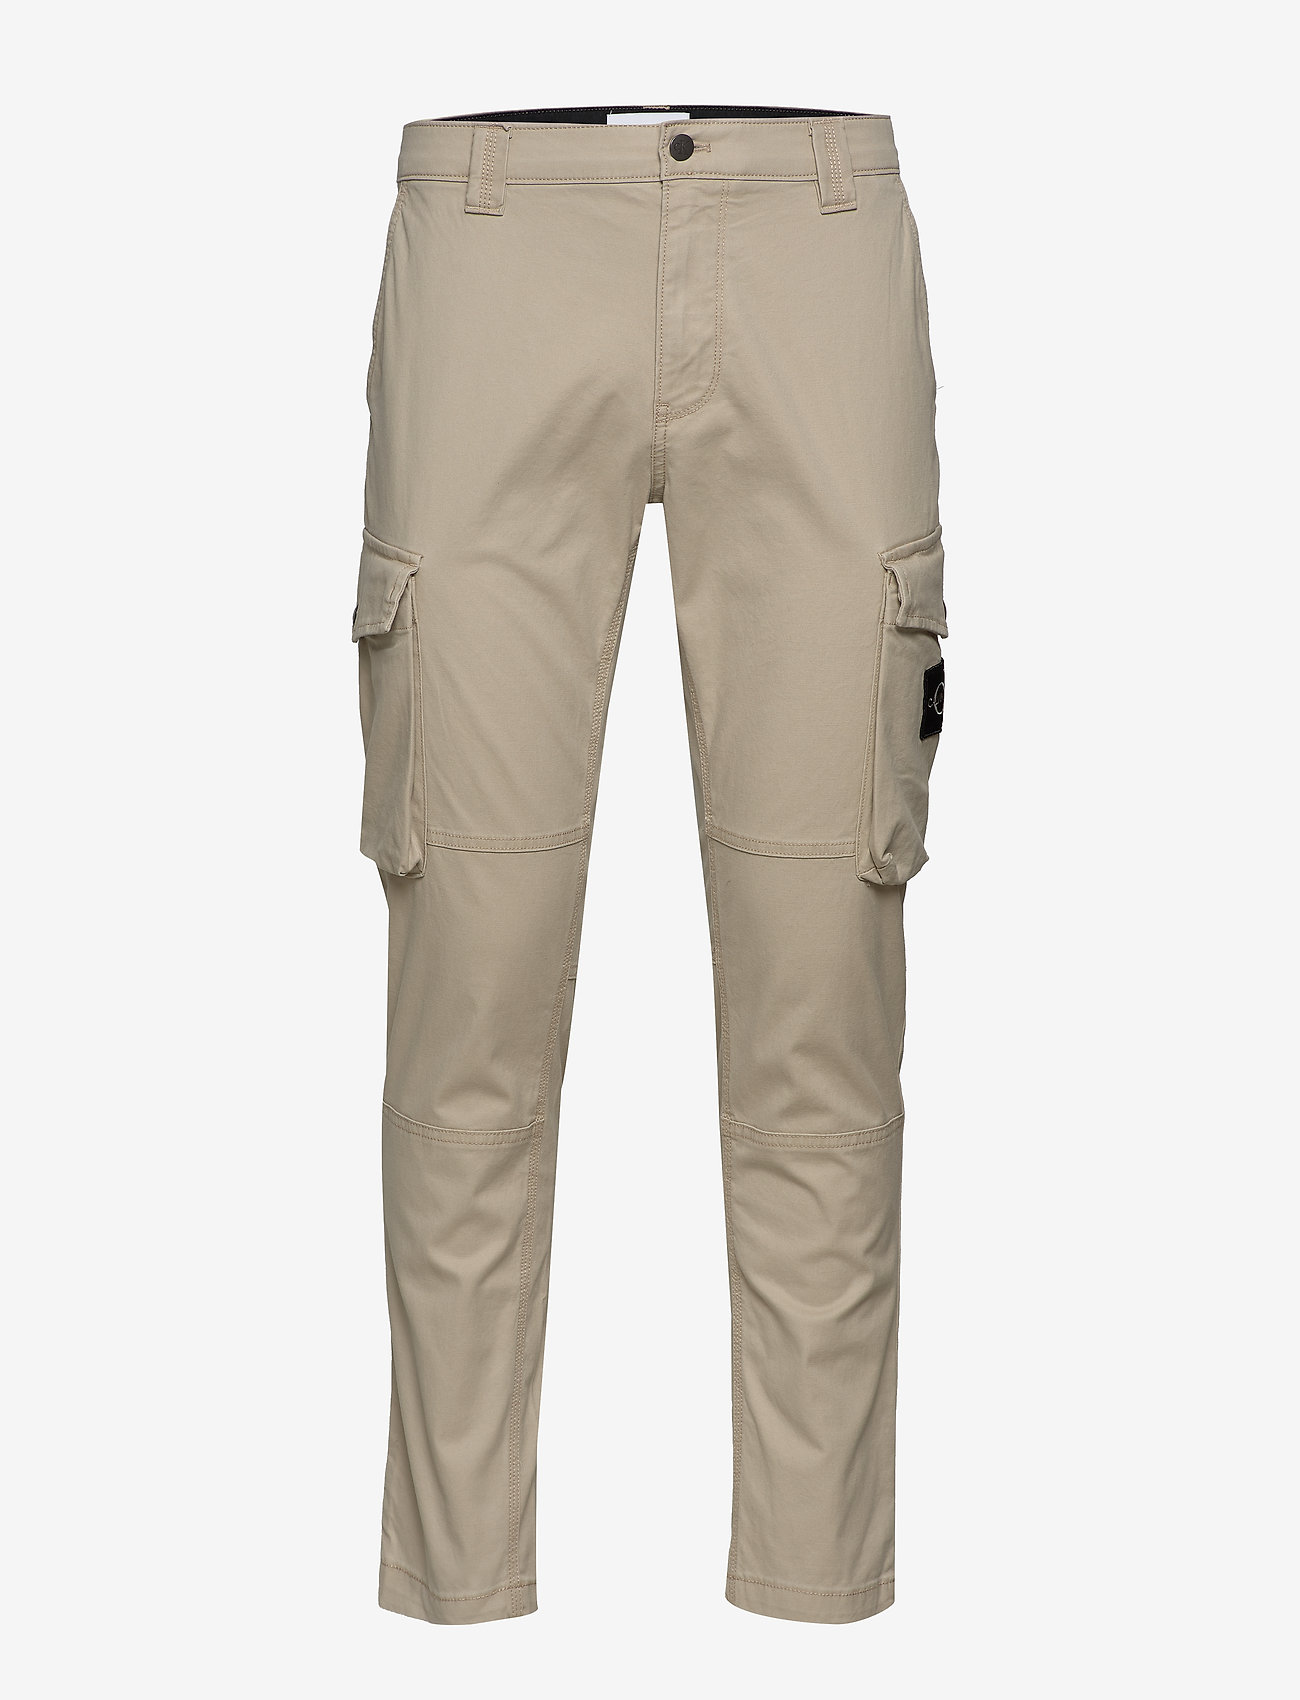 Calvin Klein Jeans - SKINNY WASHED CARGO PANT - cargo housut - plaza taupe - 0